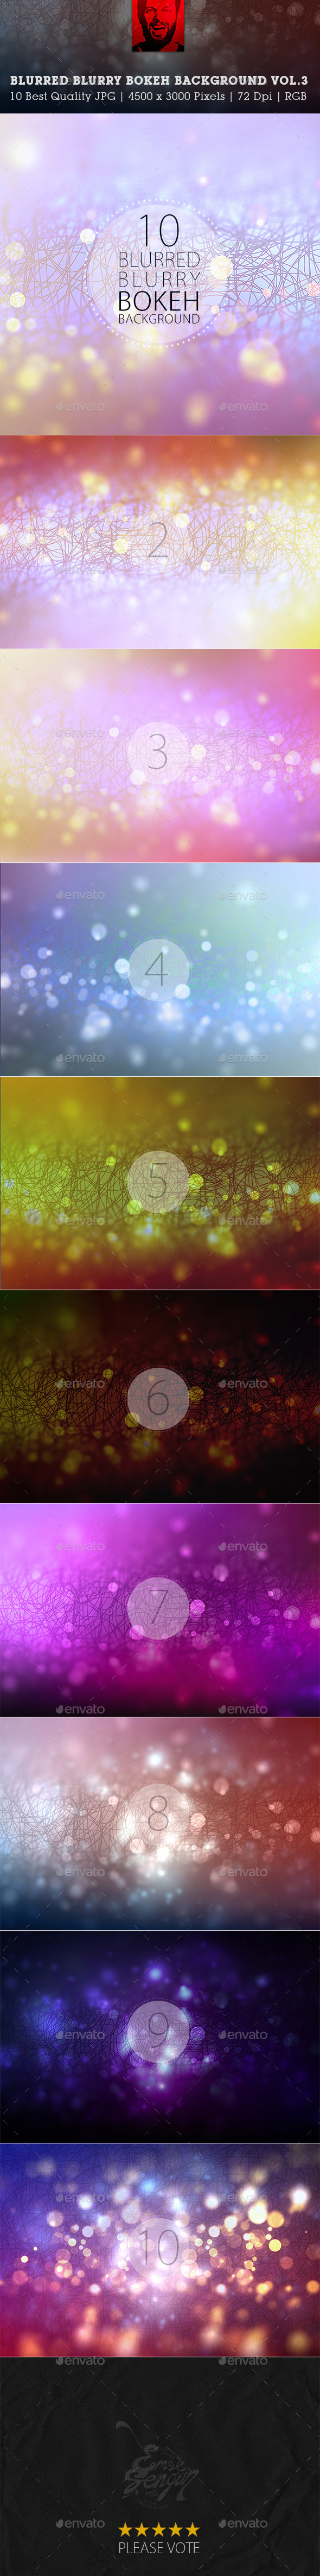 GraphicRiver Blurred Blurry Blur Bokeh Backgrounds Vol.3 9975642